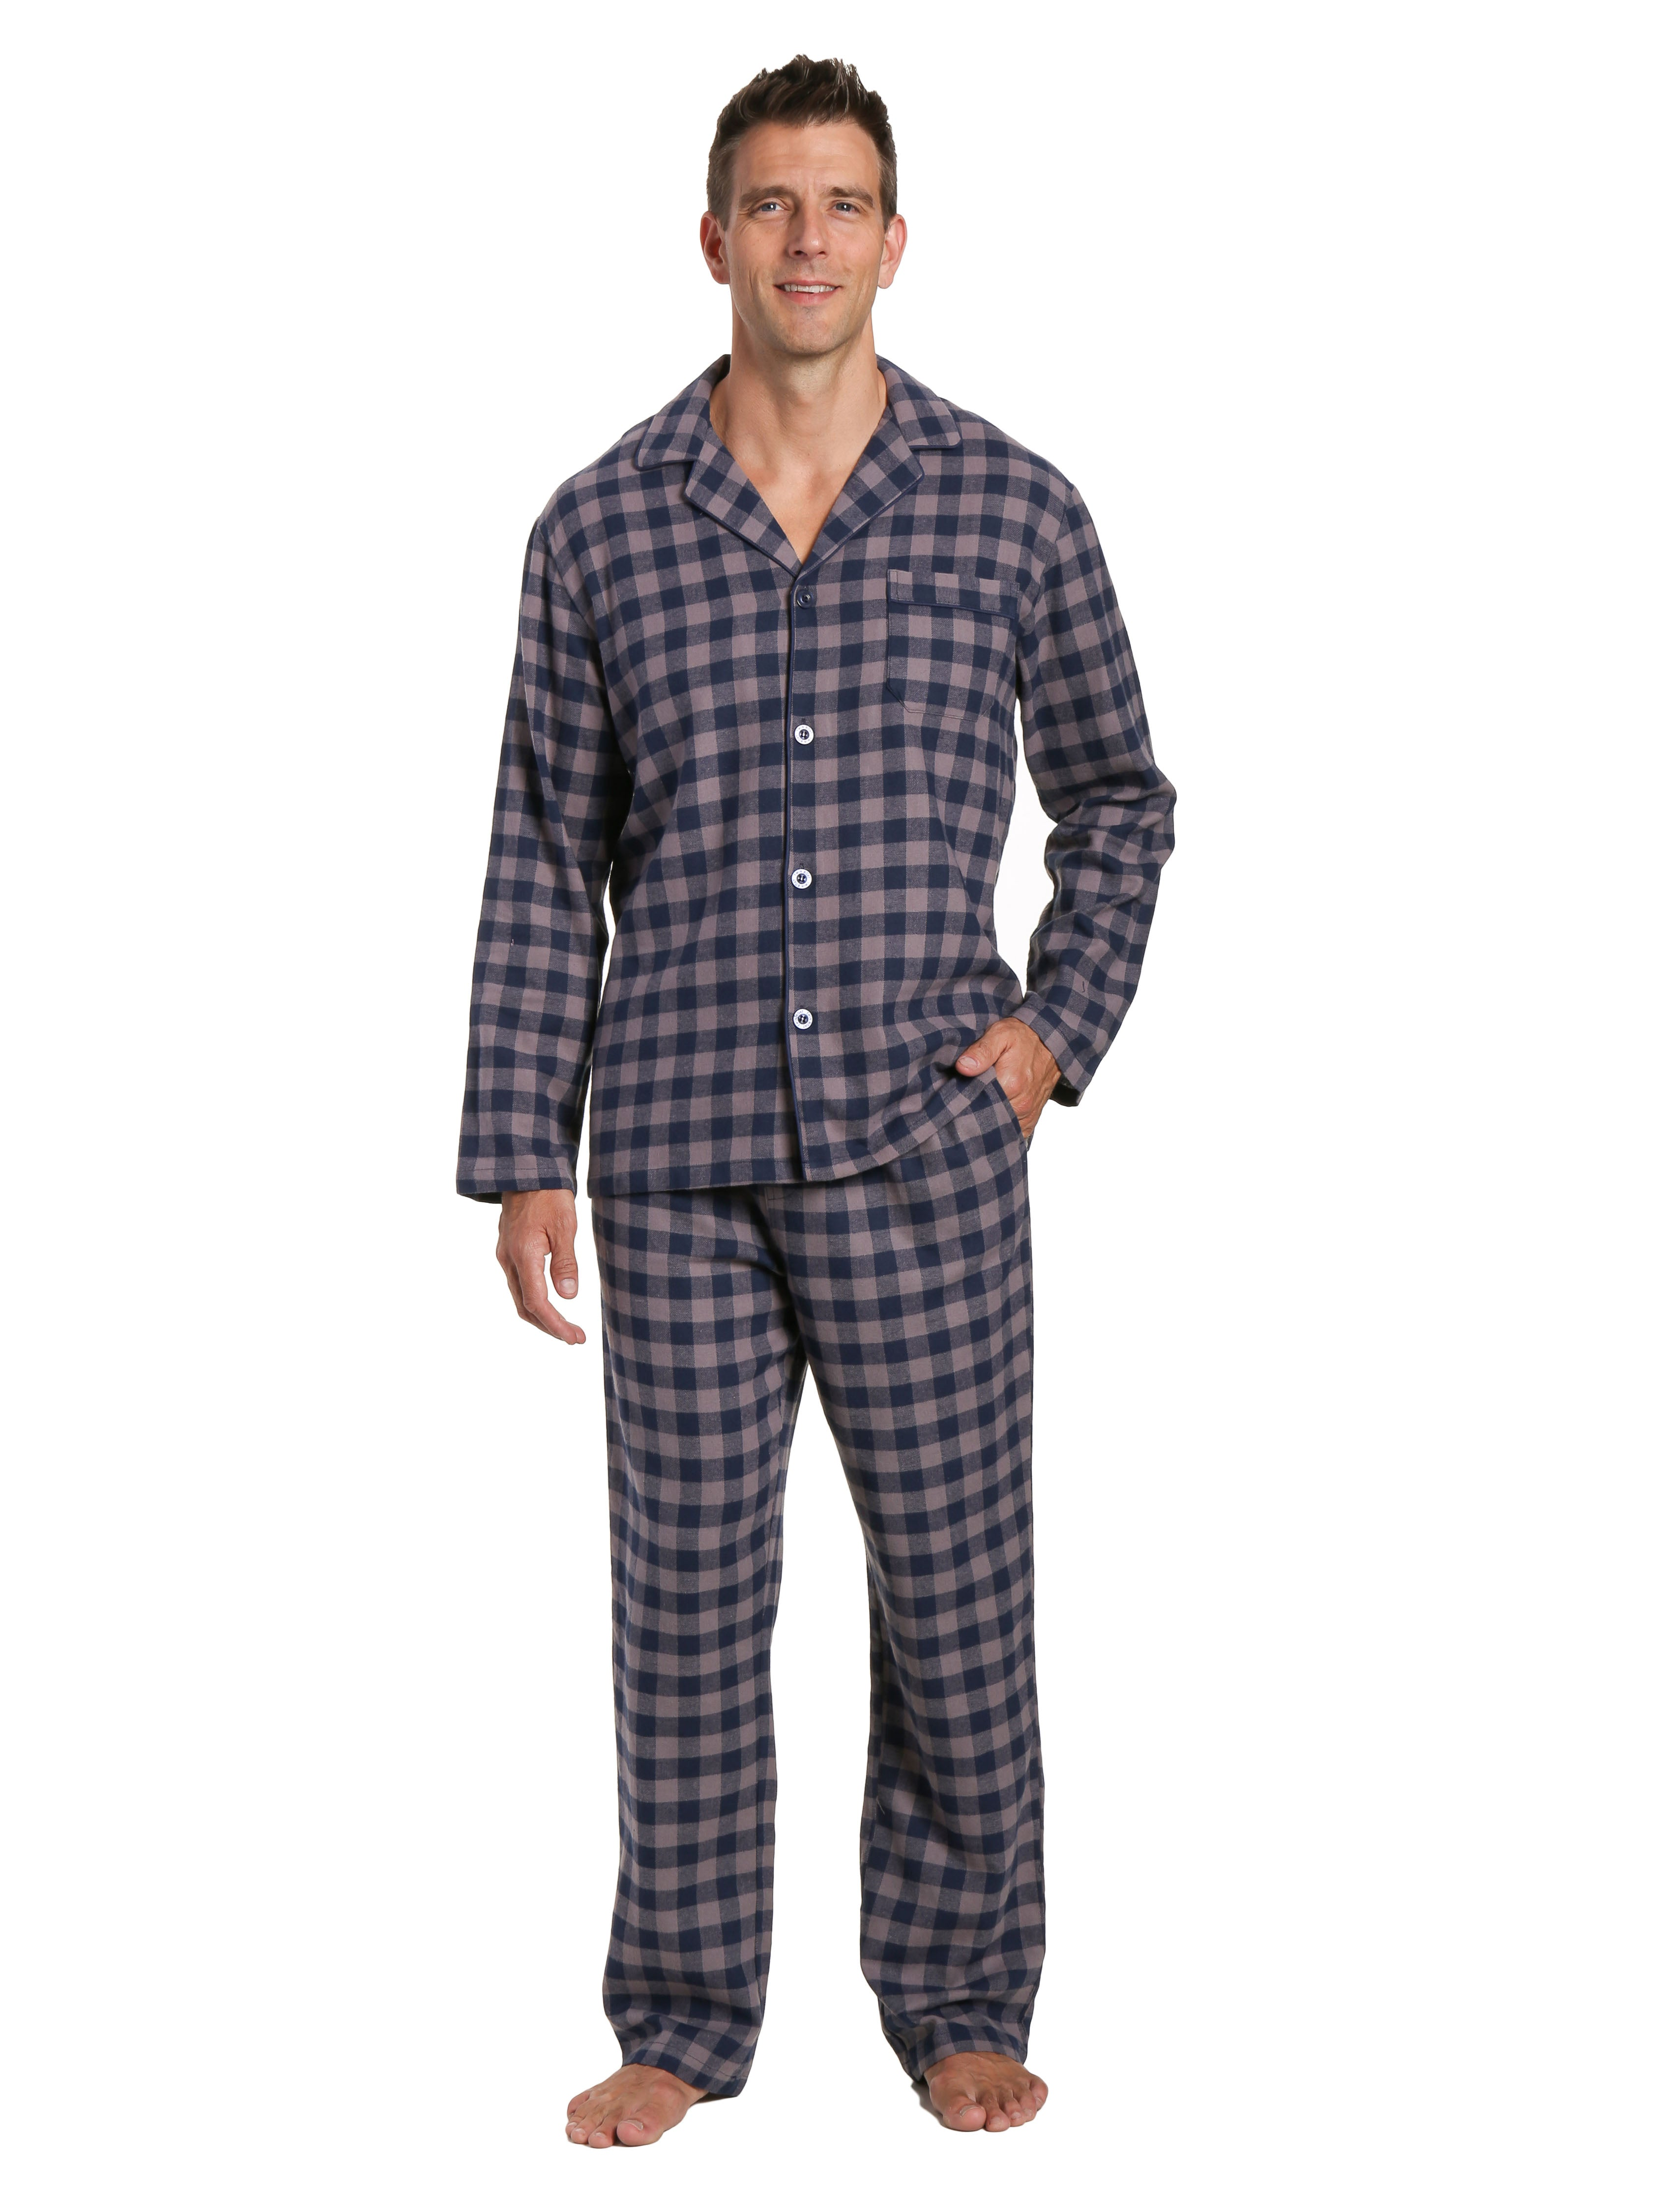 Men's 100% Cotton Flannel Pajama Set - Gingham Charcoal-Navy